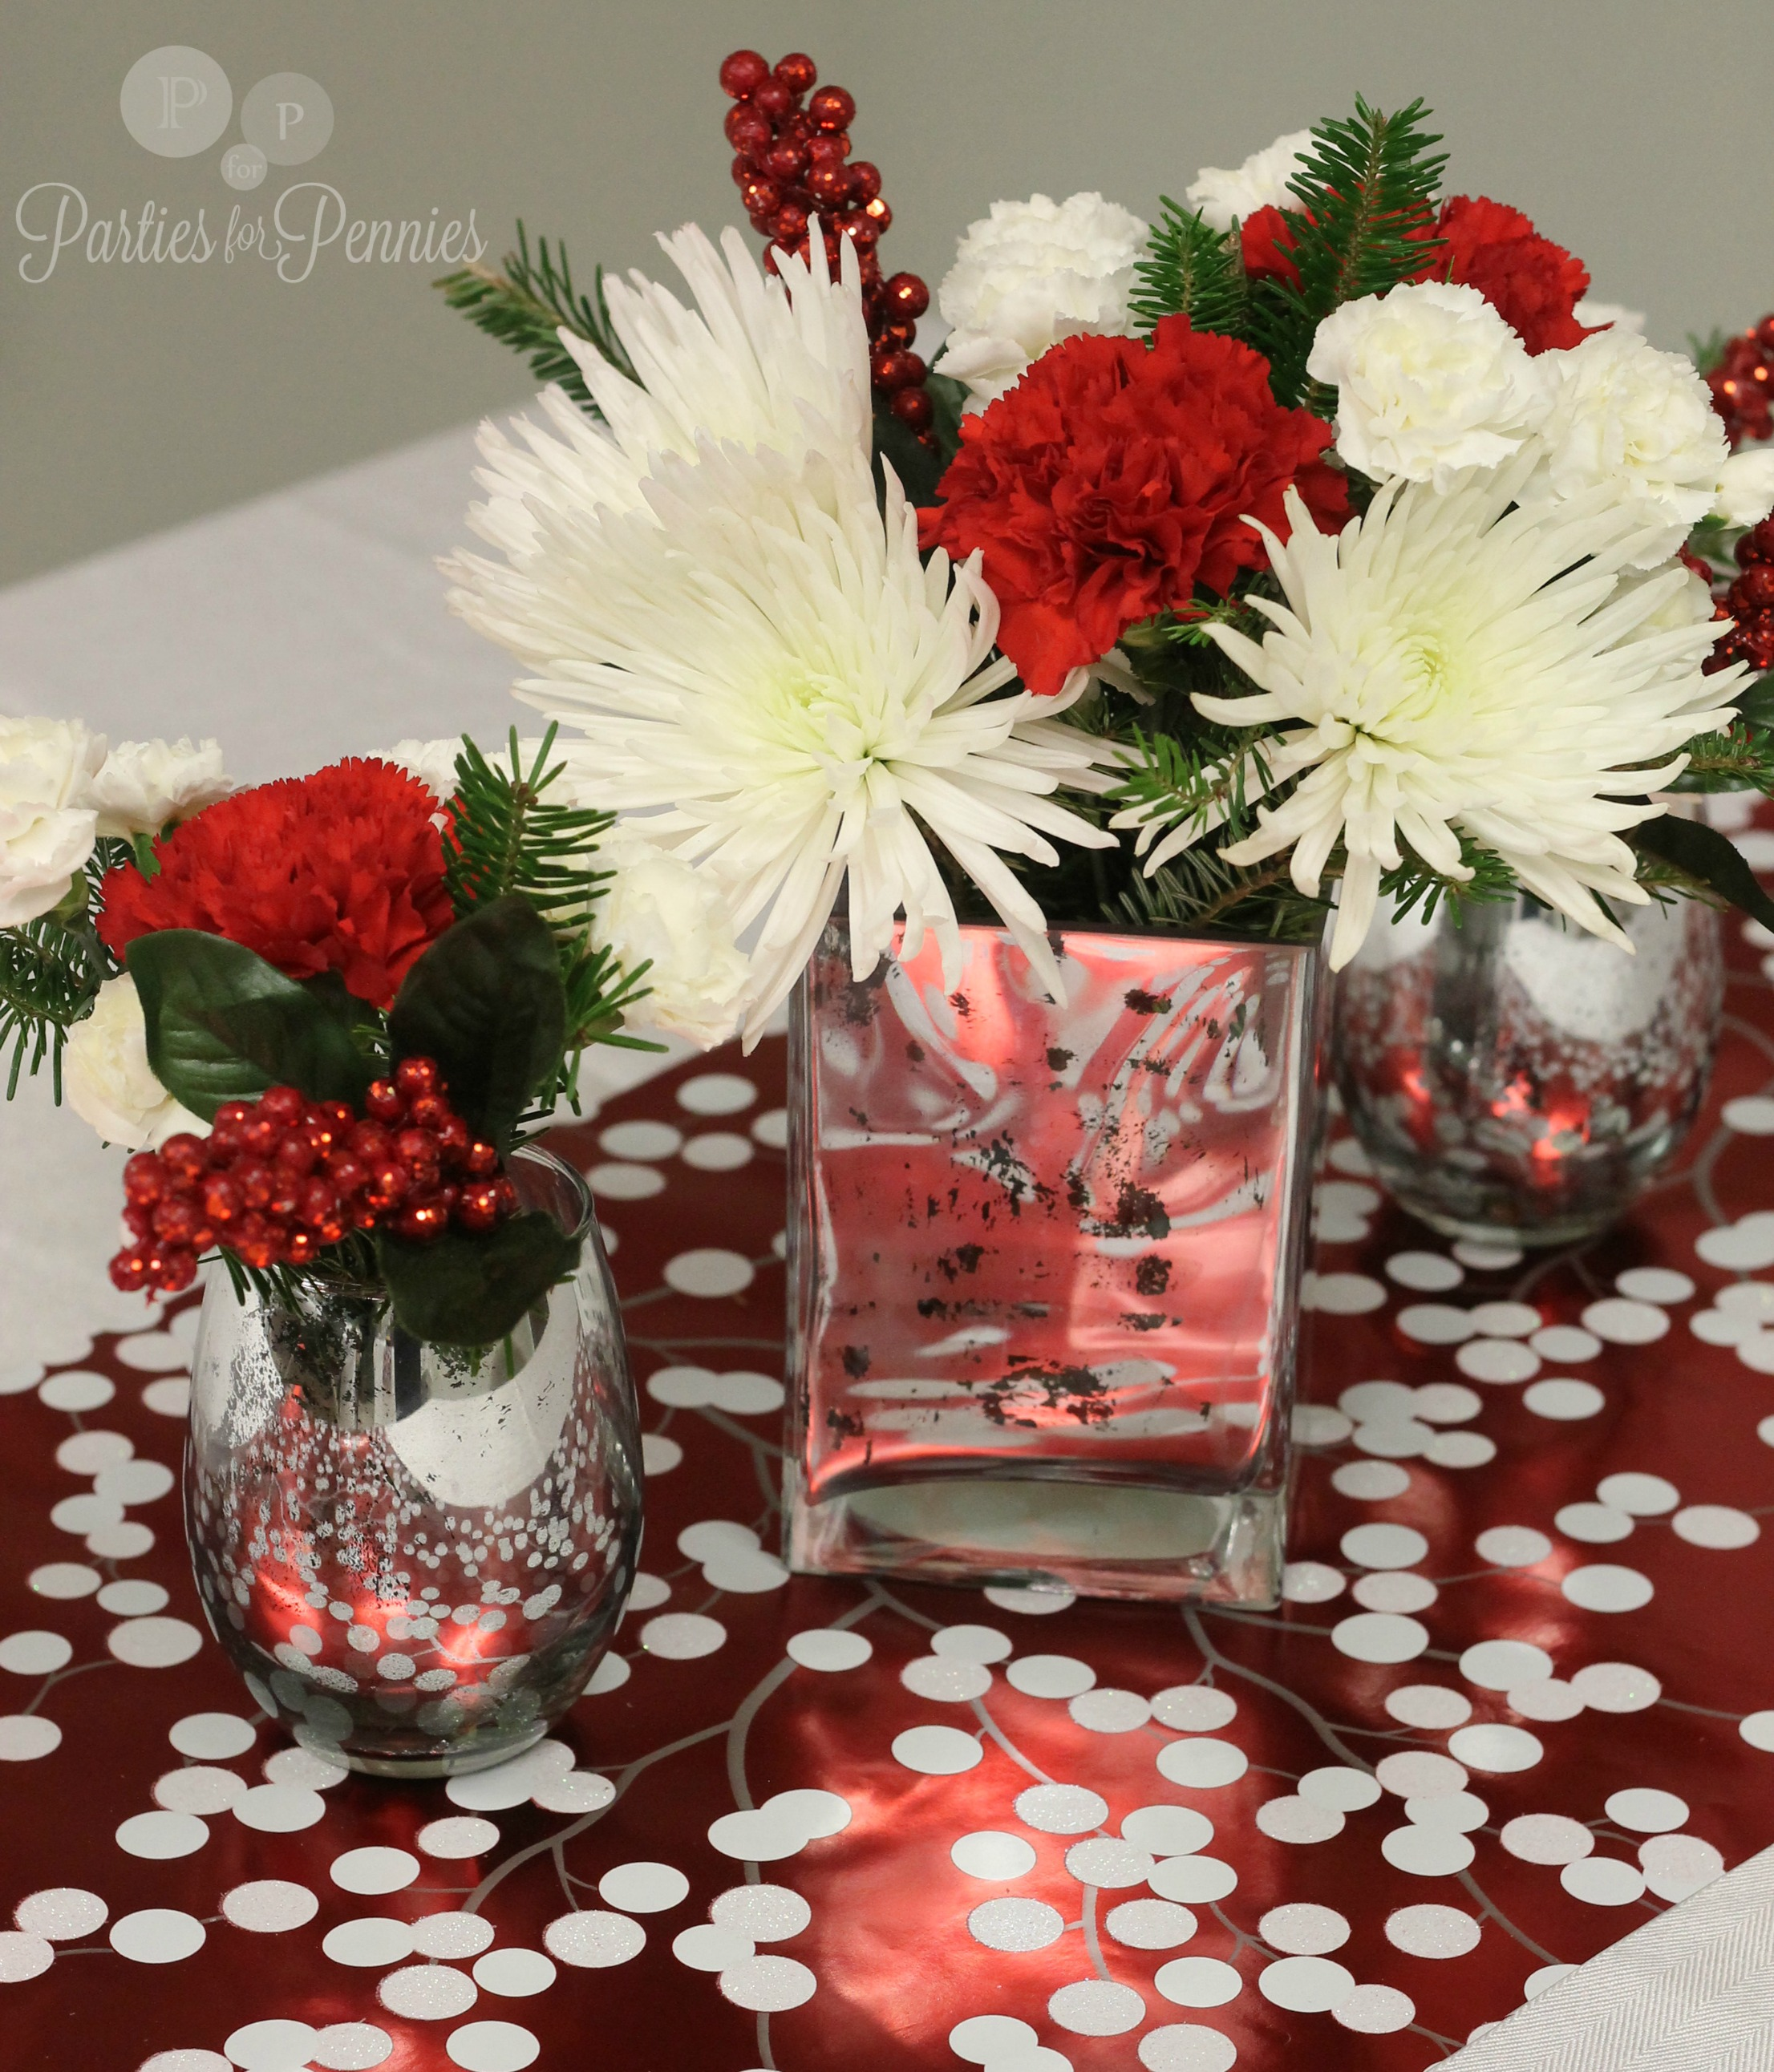 Christmas Flower Decorations Ideas.Christmas Party Ideas Parties For Pennies